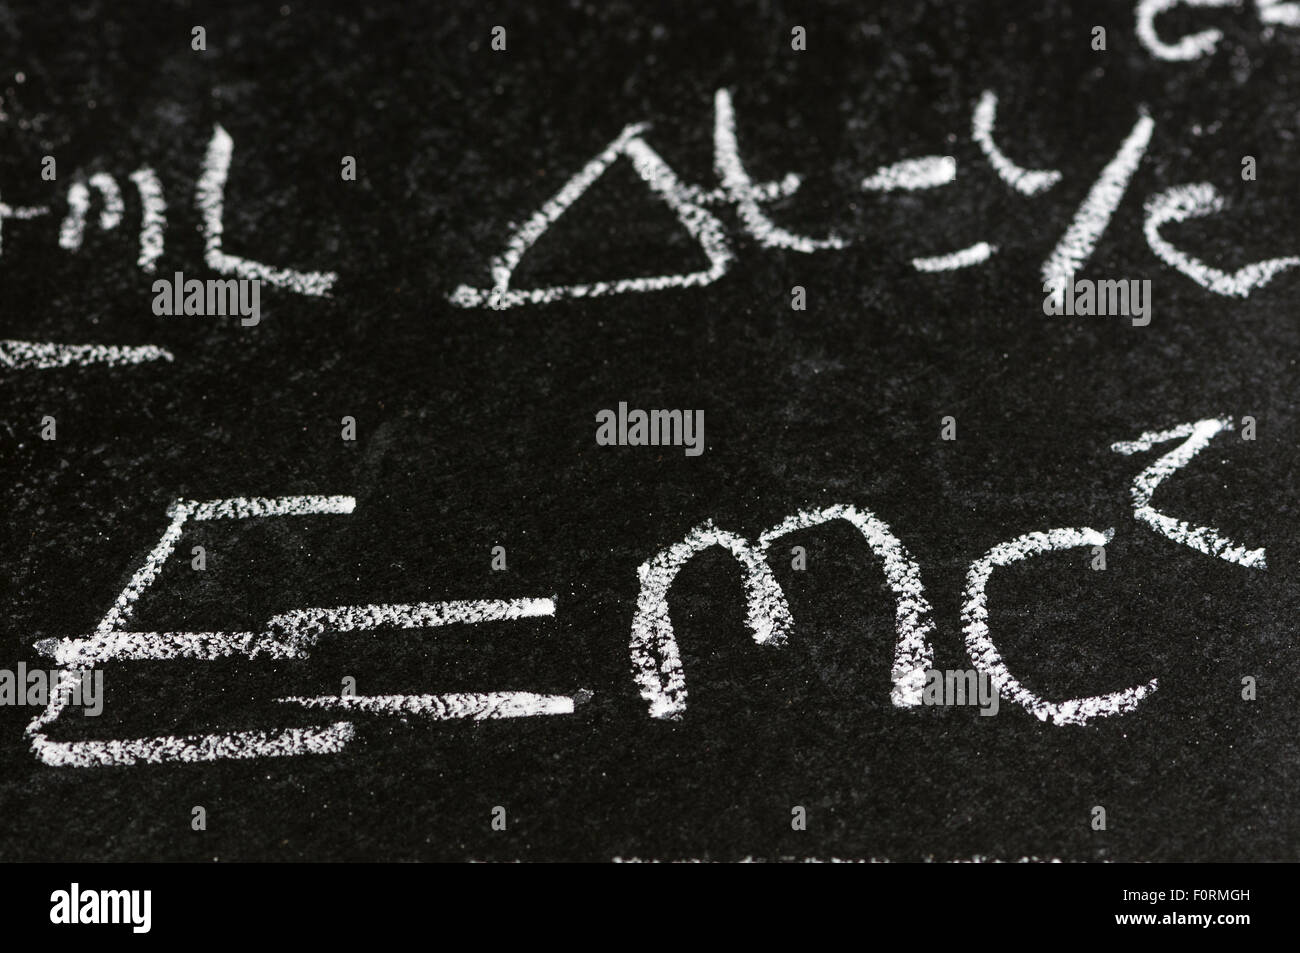 Mathematical derivation of E=mc^2 on a blackboard - Stock Image